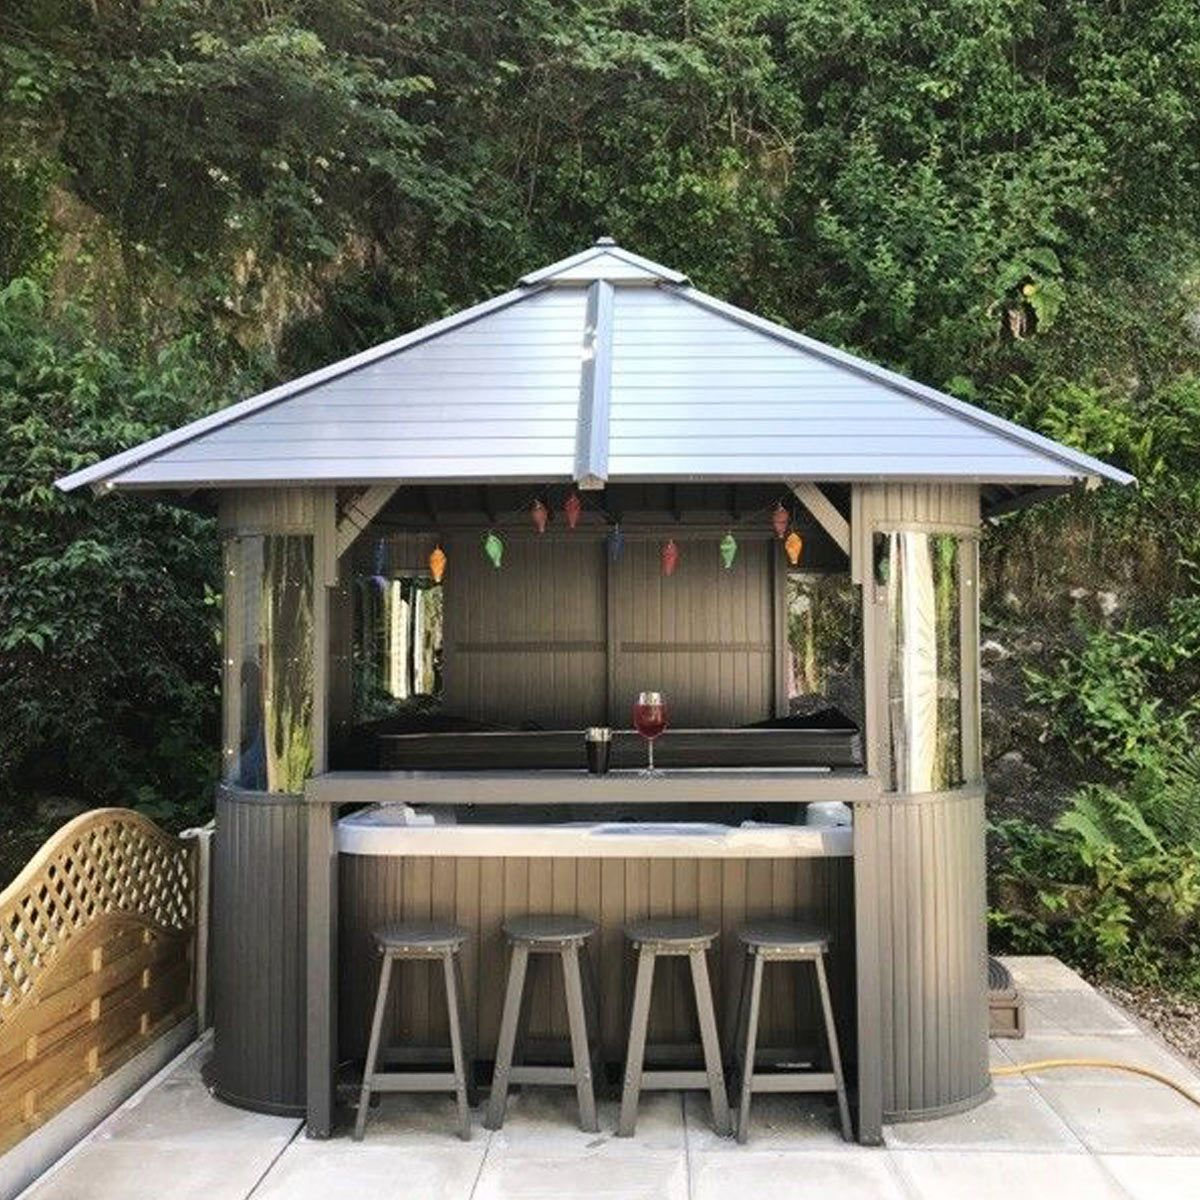 Superior Spas Marley Hot Tub Gazebo In 2 Colours Costco Uk With